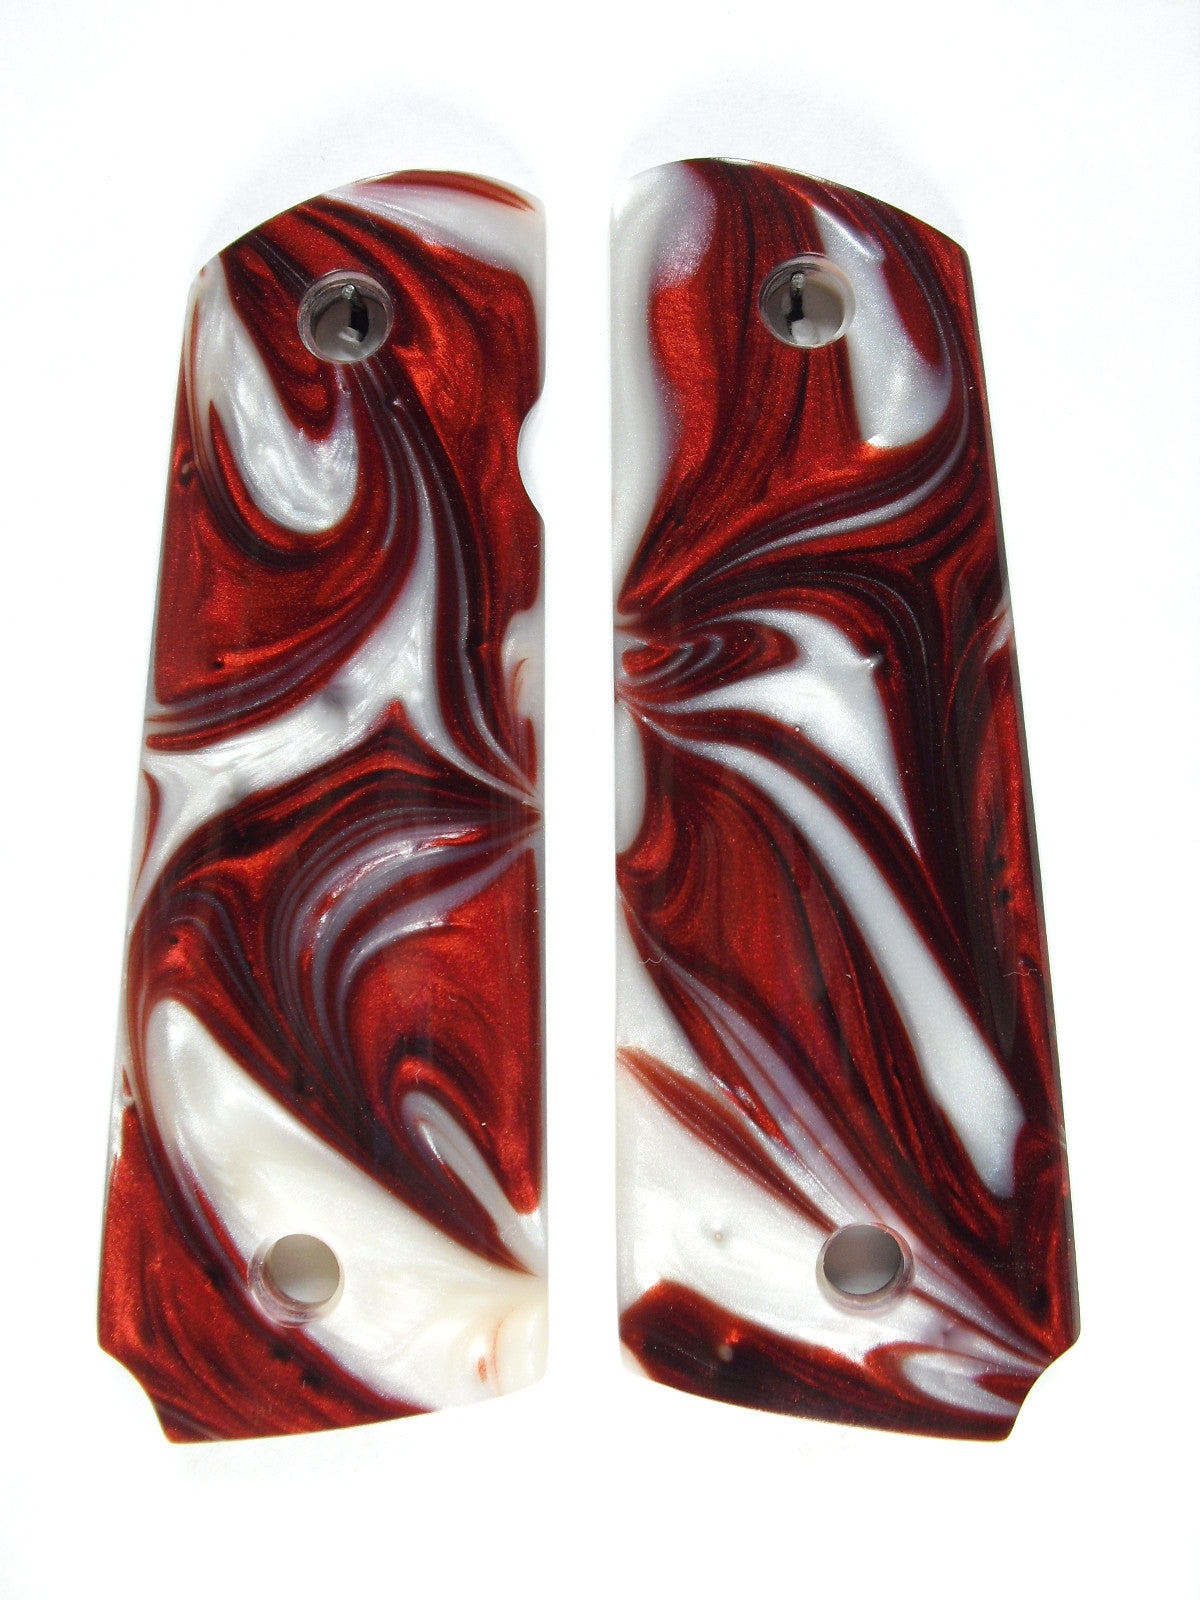 Red & White Pearl 1911 Grips (Full Size) – LS Grips